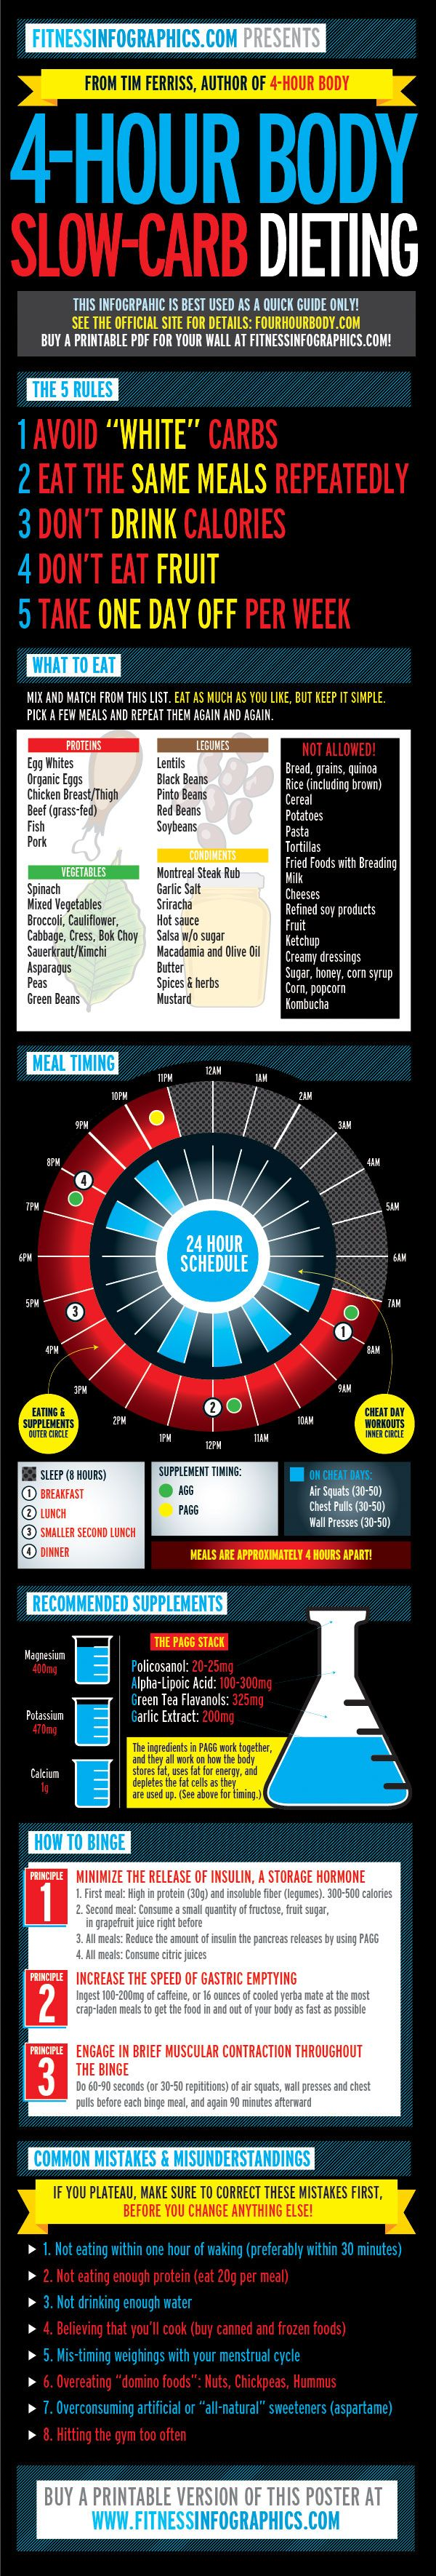 Tim Ferriss popular 4-Hour Body dieting plan in infographic form! Jump on the bandwagon!